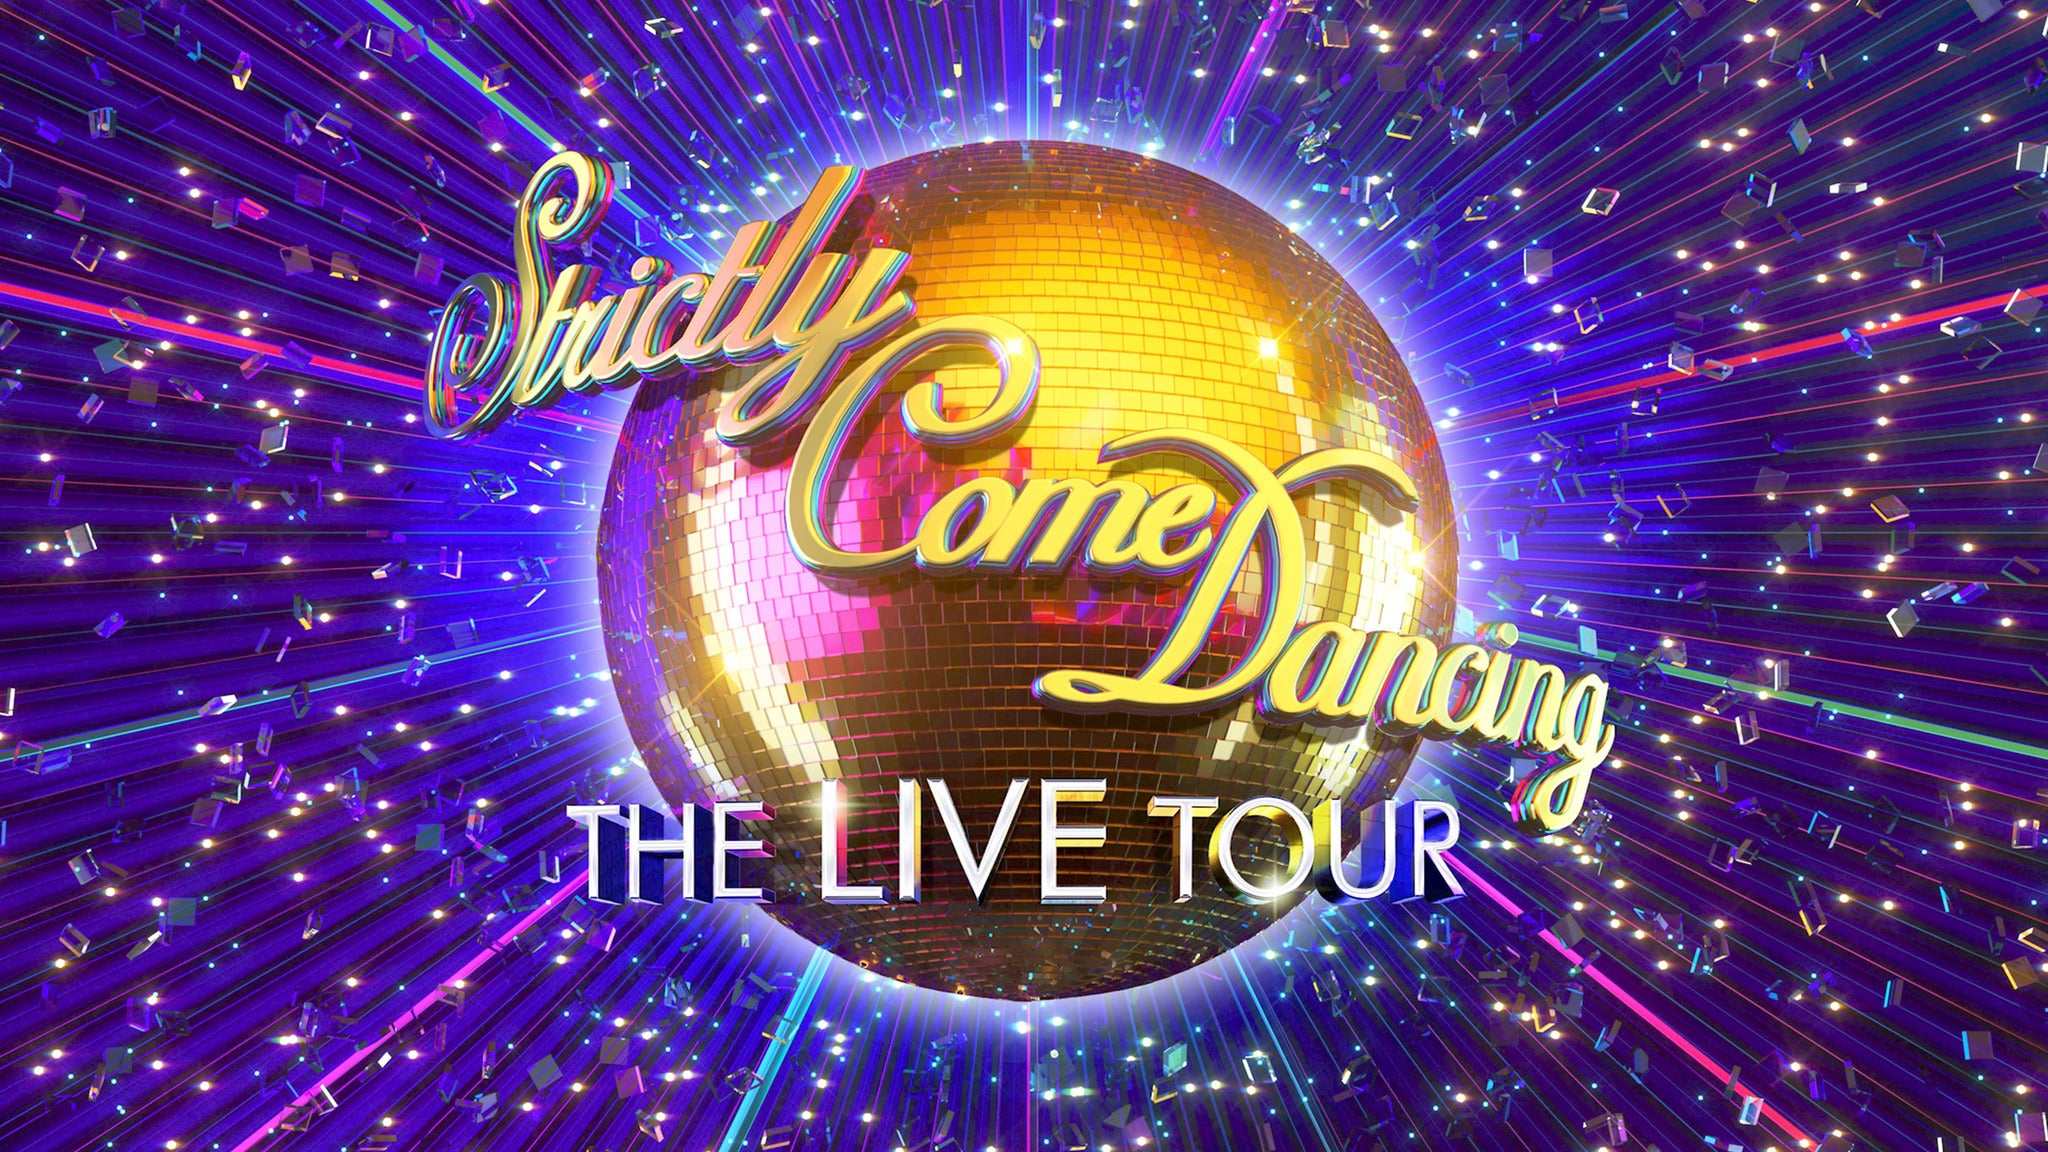 Strictly Come Dancing - the Live Tour Seating Plan Arena Birmingham